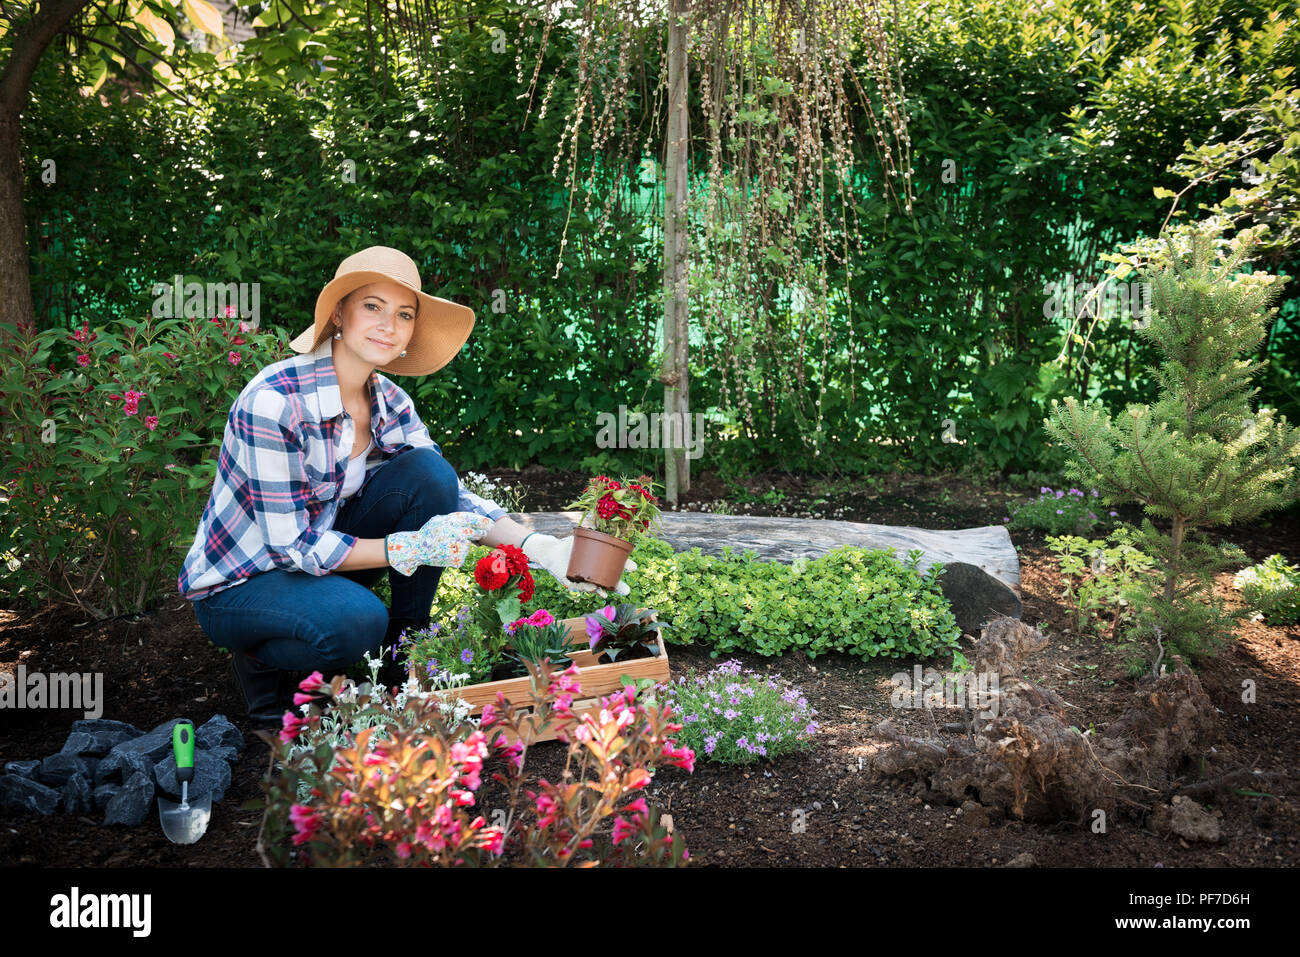 Beautiful female gardener looking at camera, holding flowers ready to be planted in her garden. Gardening concept. - Stock Image